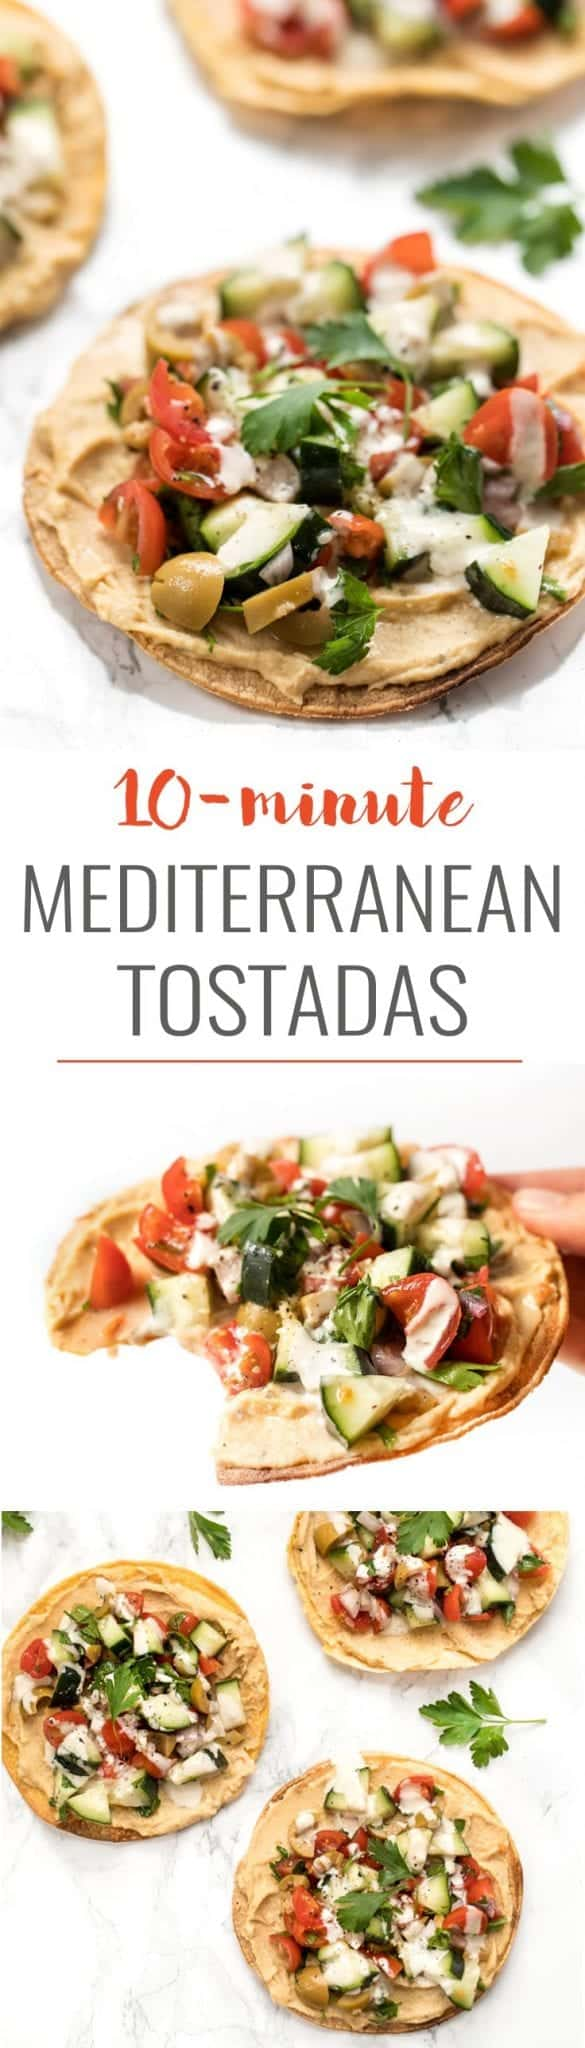 vegan mediterranean tostadas with hummus and tahini